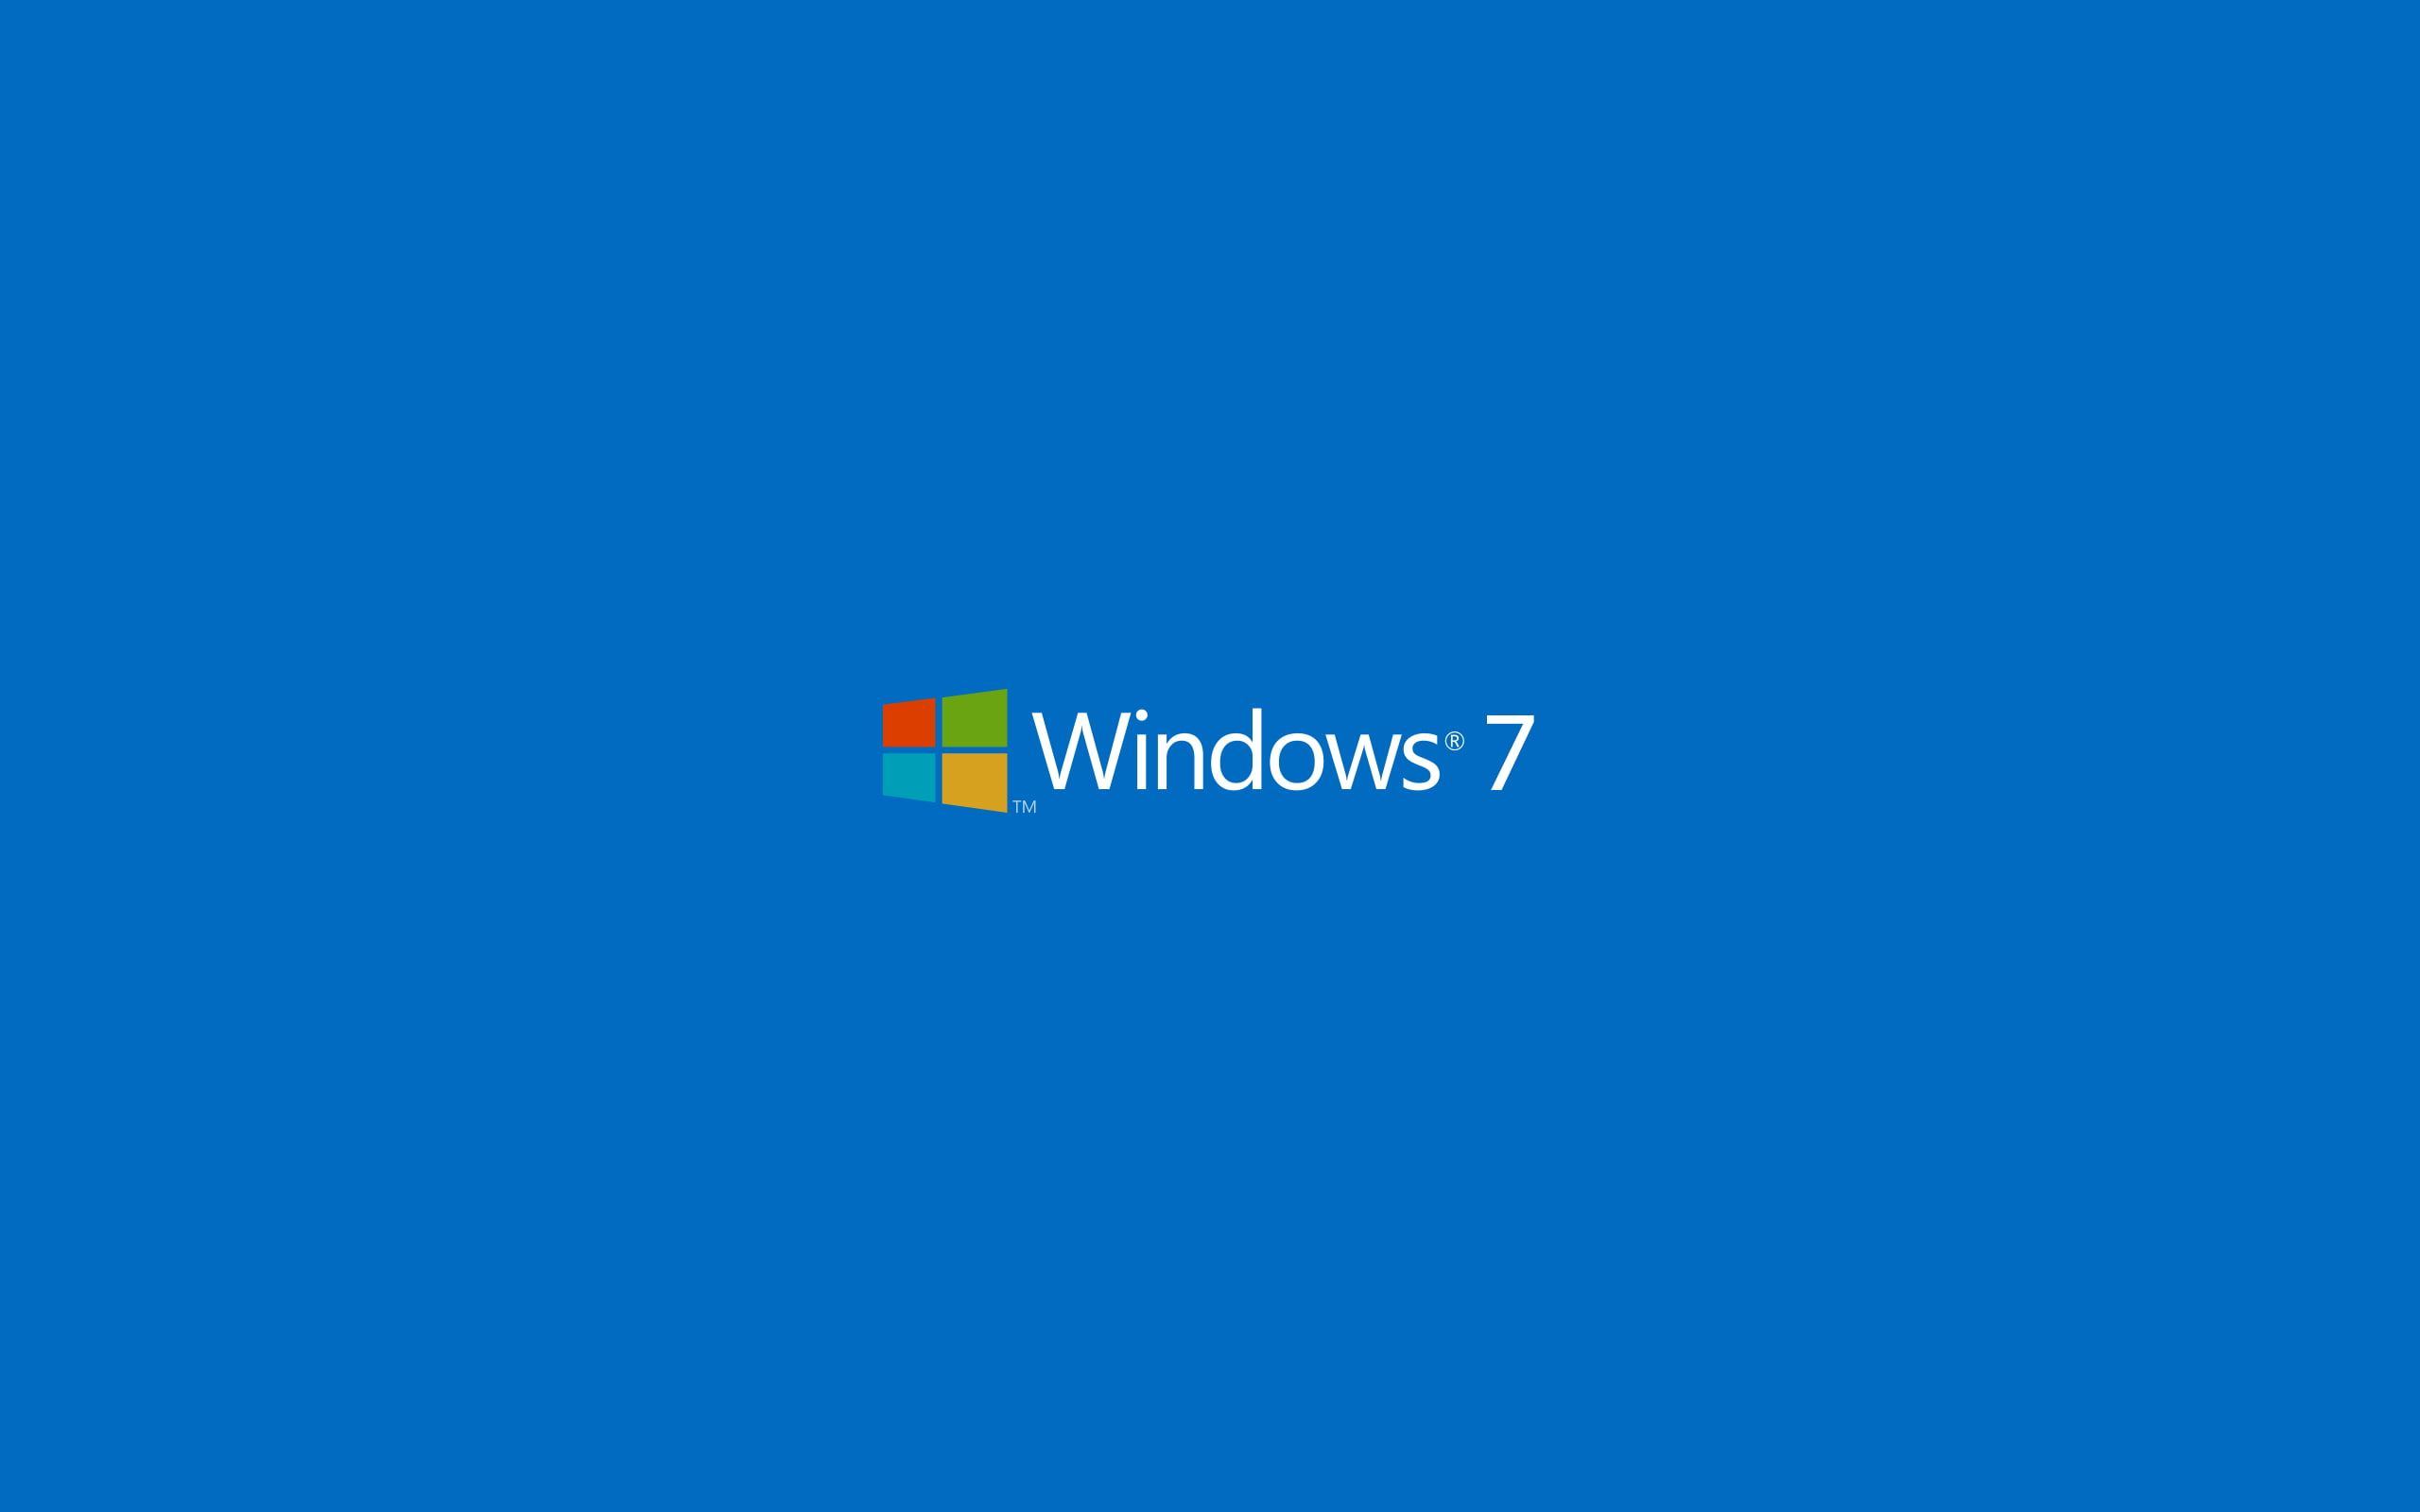 Windows 7 Microsoft Windows operating system minimalism